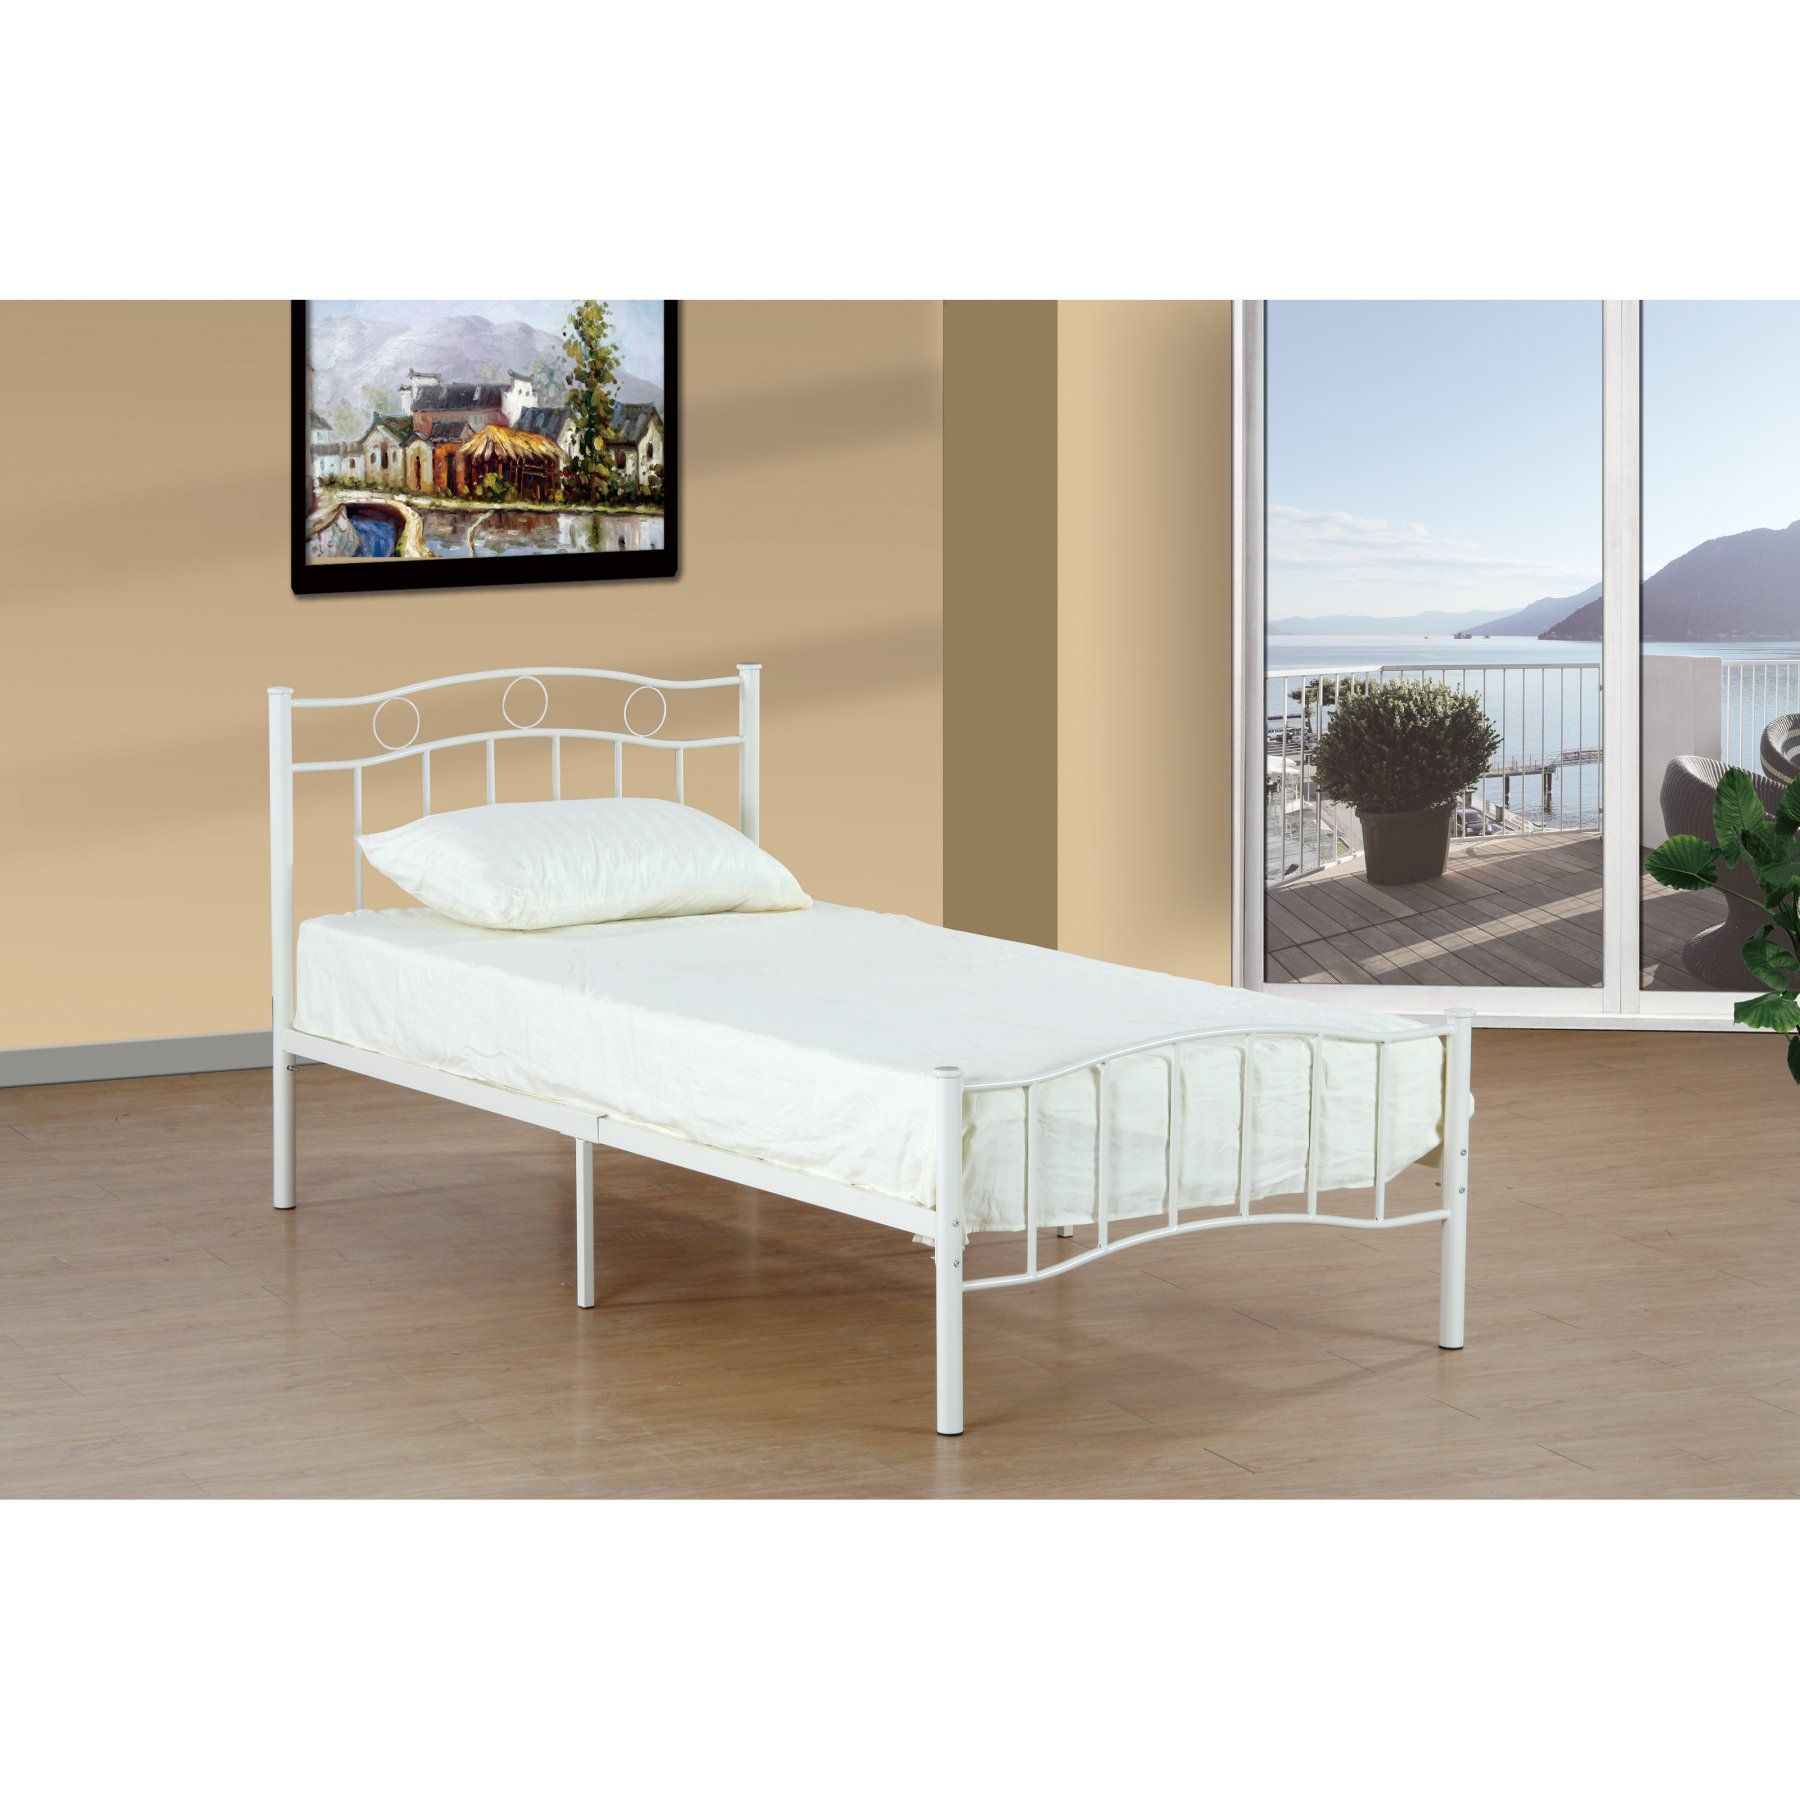 Donco Kids Spindle Twin Bed MPD1175SWH Bed, Kids bed